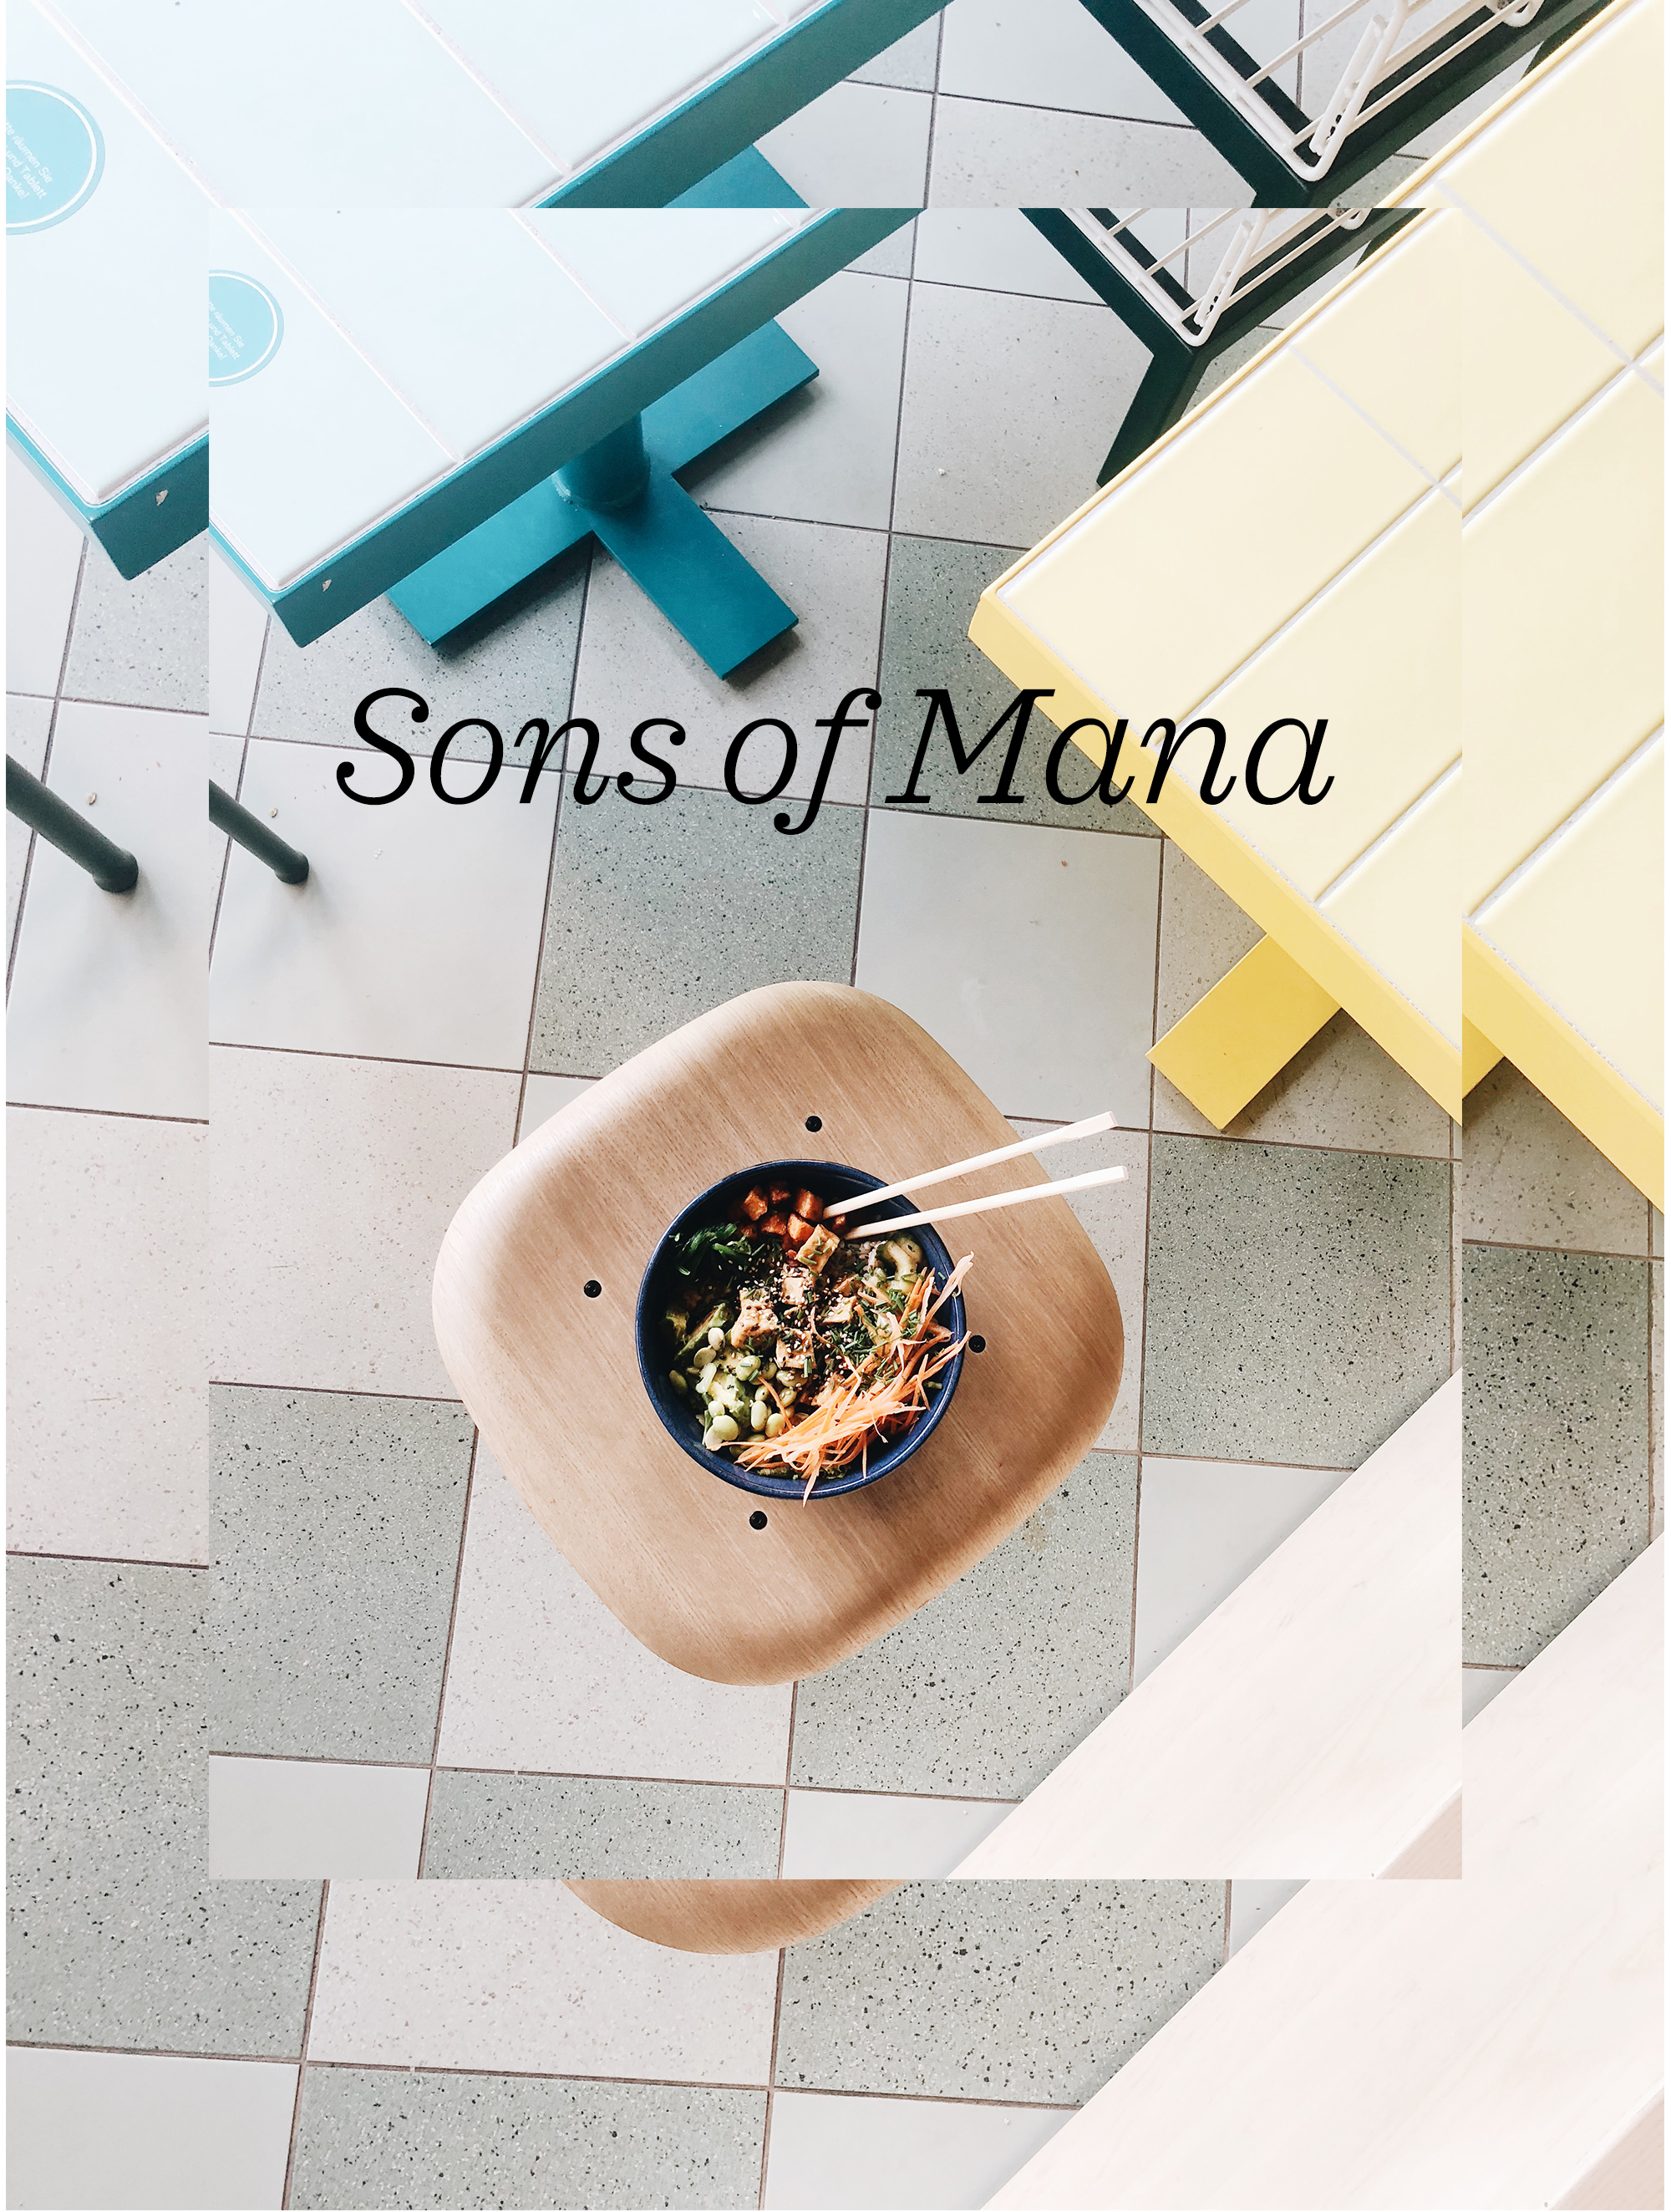 Sons of Mana